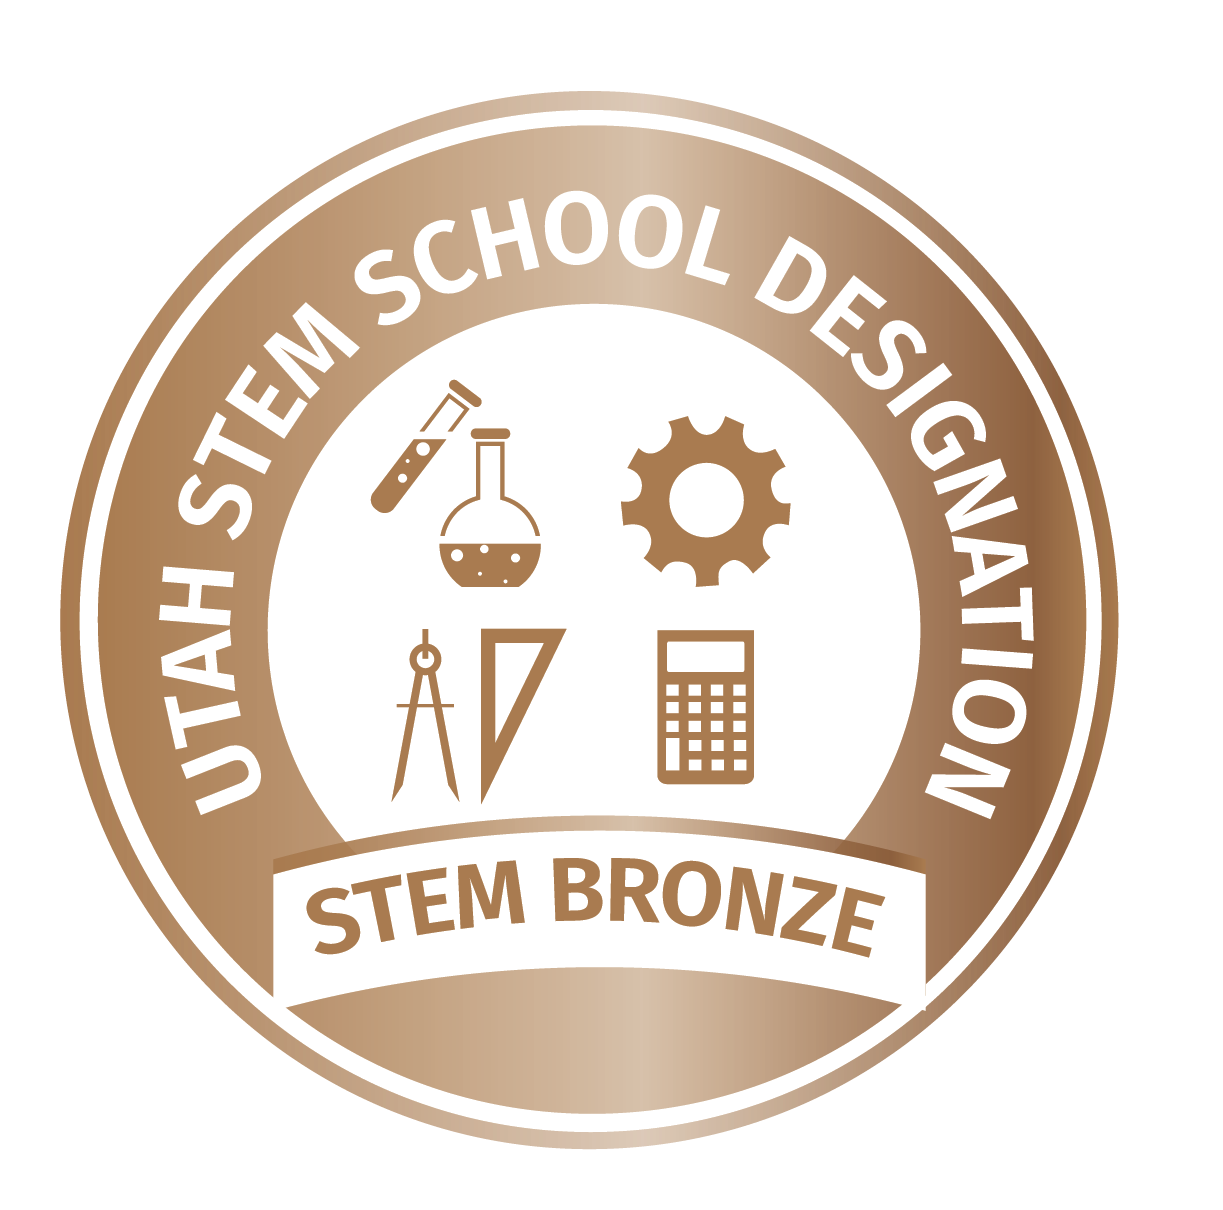 bronze school stem logo